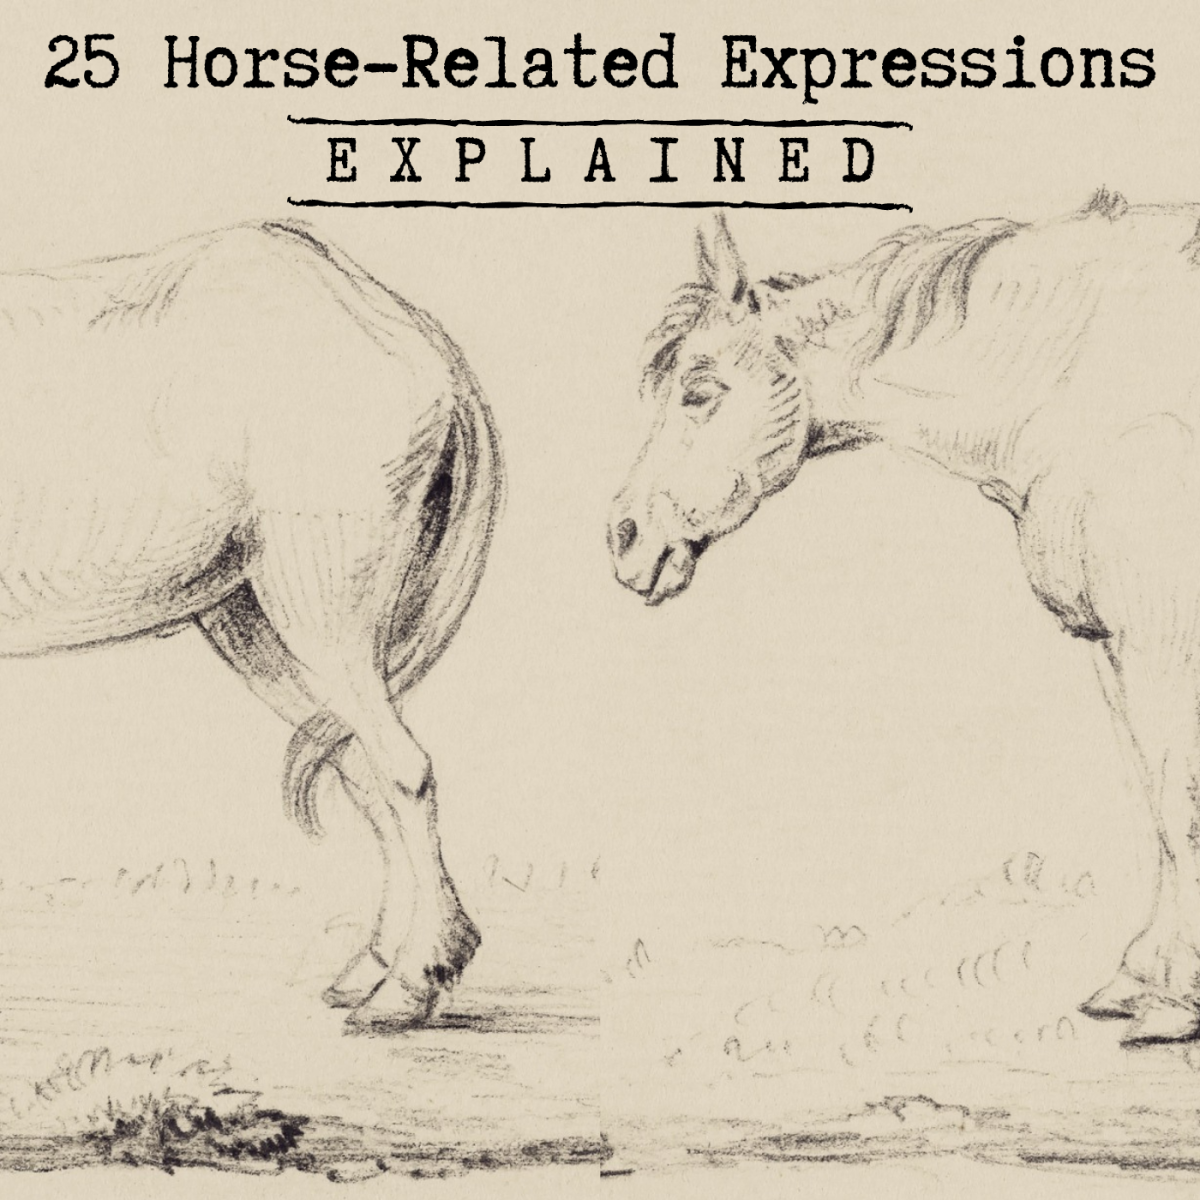 Have you ever noticed how many of our expressions and idioms involve horses in some way?